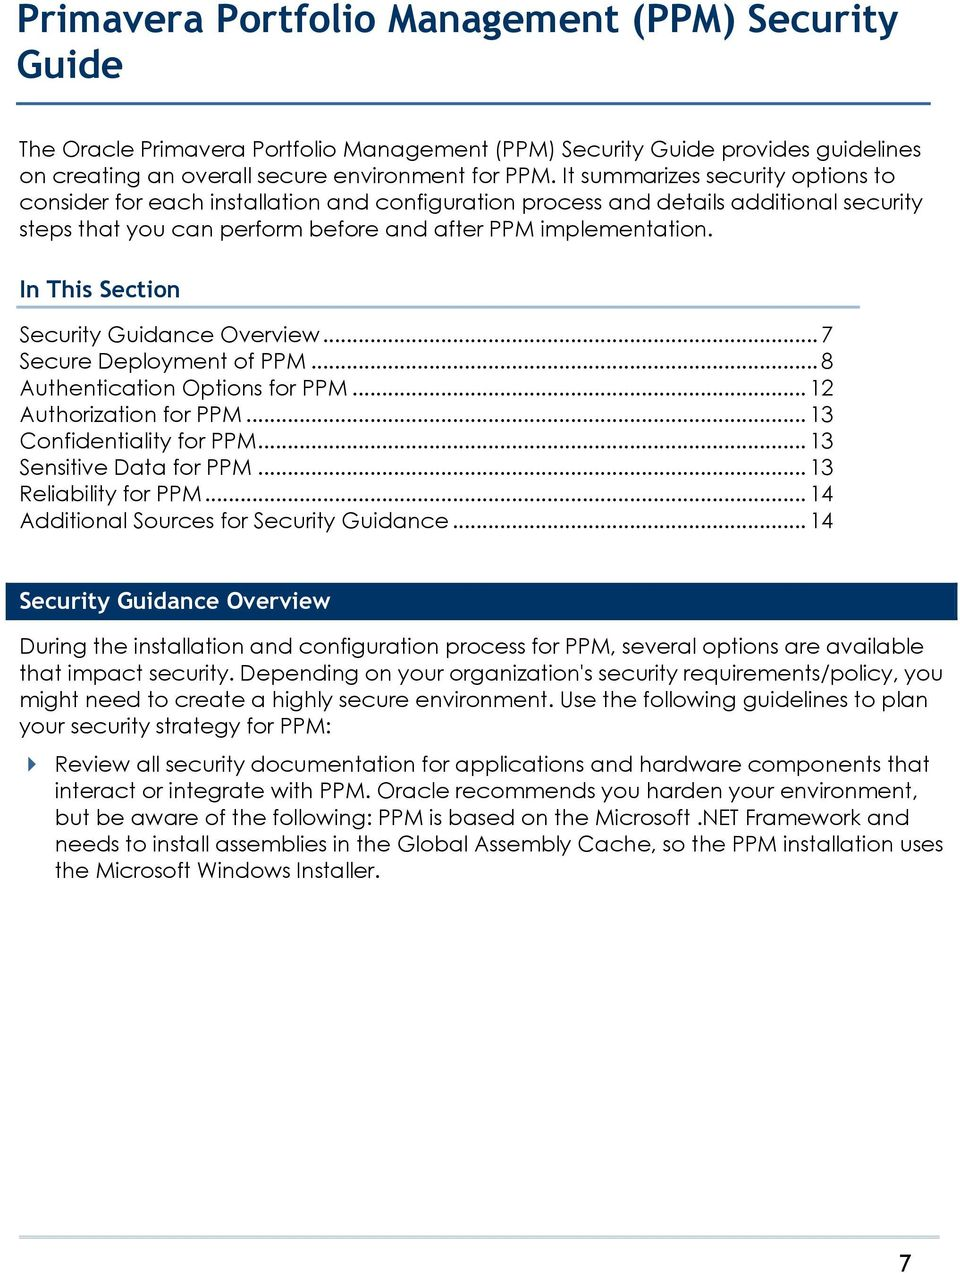 In This Section Security Guidance Overview... 7 Secure Deployment of PPM... 8 Authentication Options for PPM... 12 Authorization for PPM... 13 Confidentiality for PPM... 13 Sensitive Data for PPM.